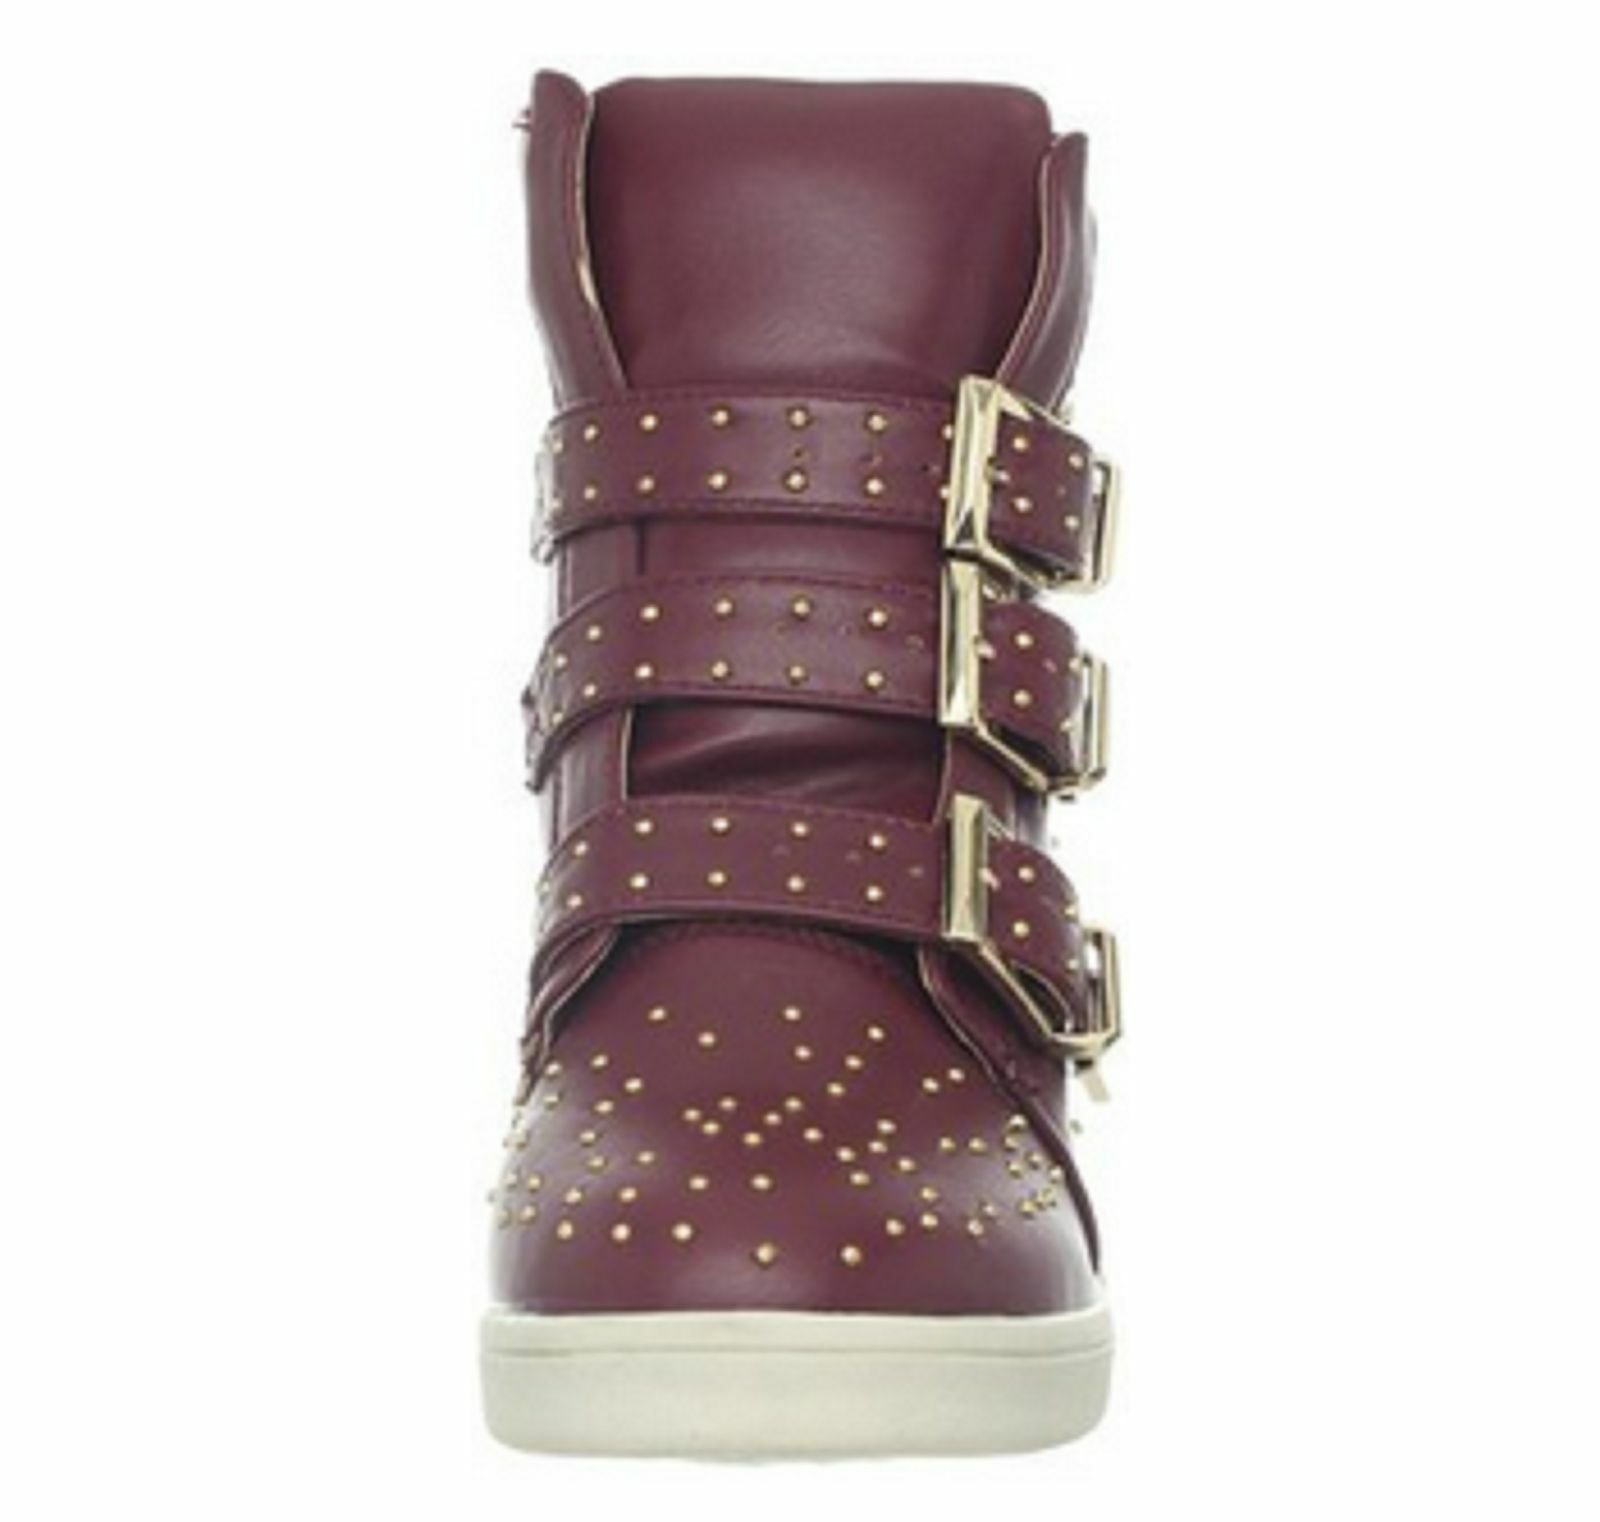 Wanted shoes Women's Gramercy Fashion Sneaker,Burgundy Size 9M US